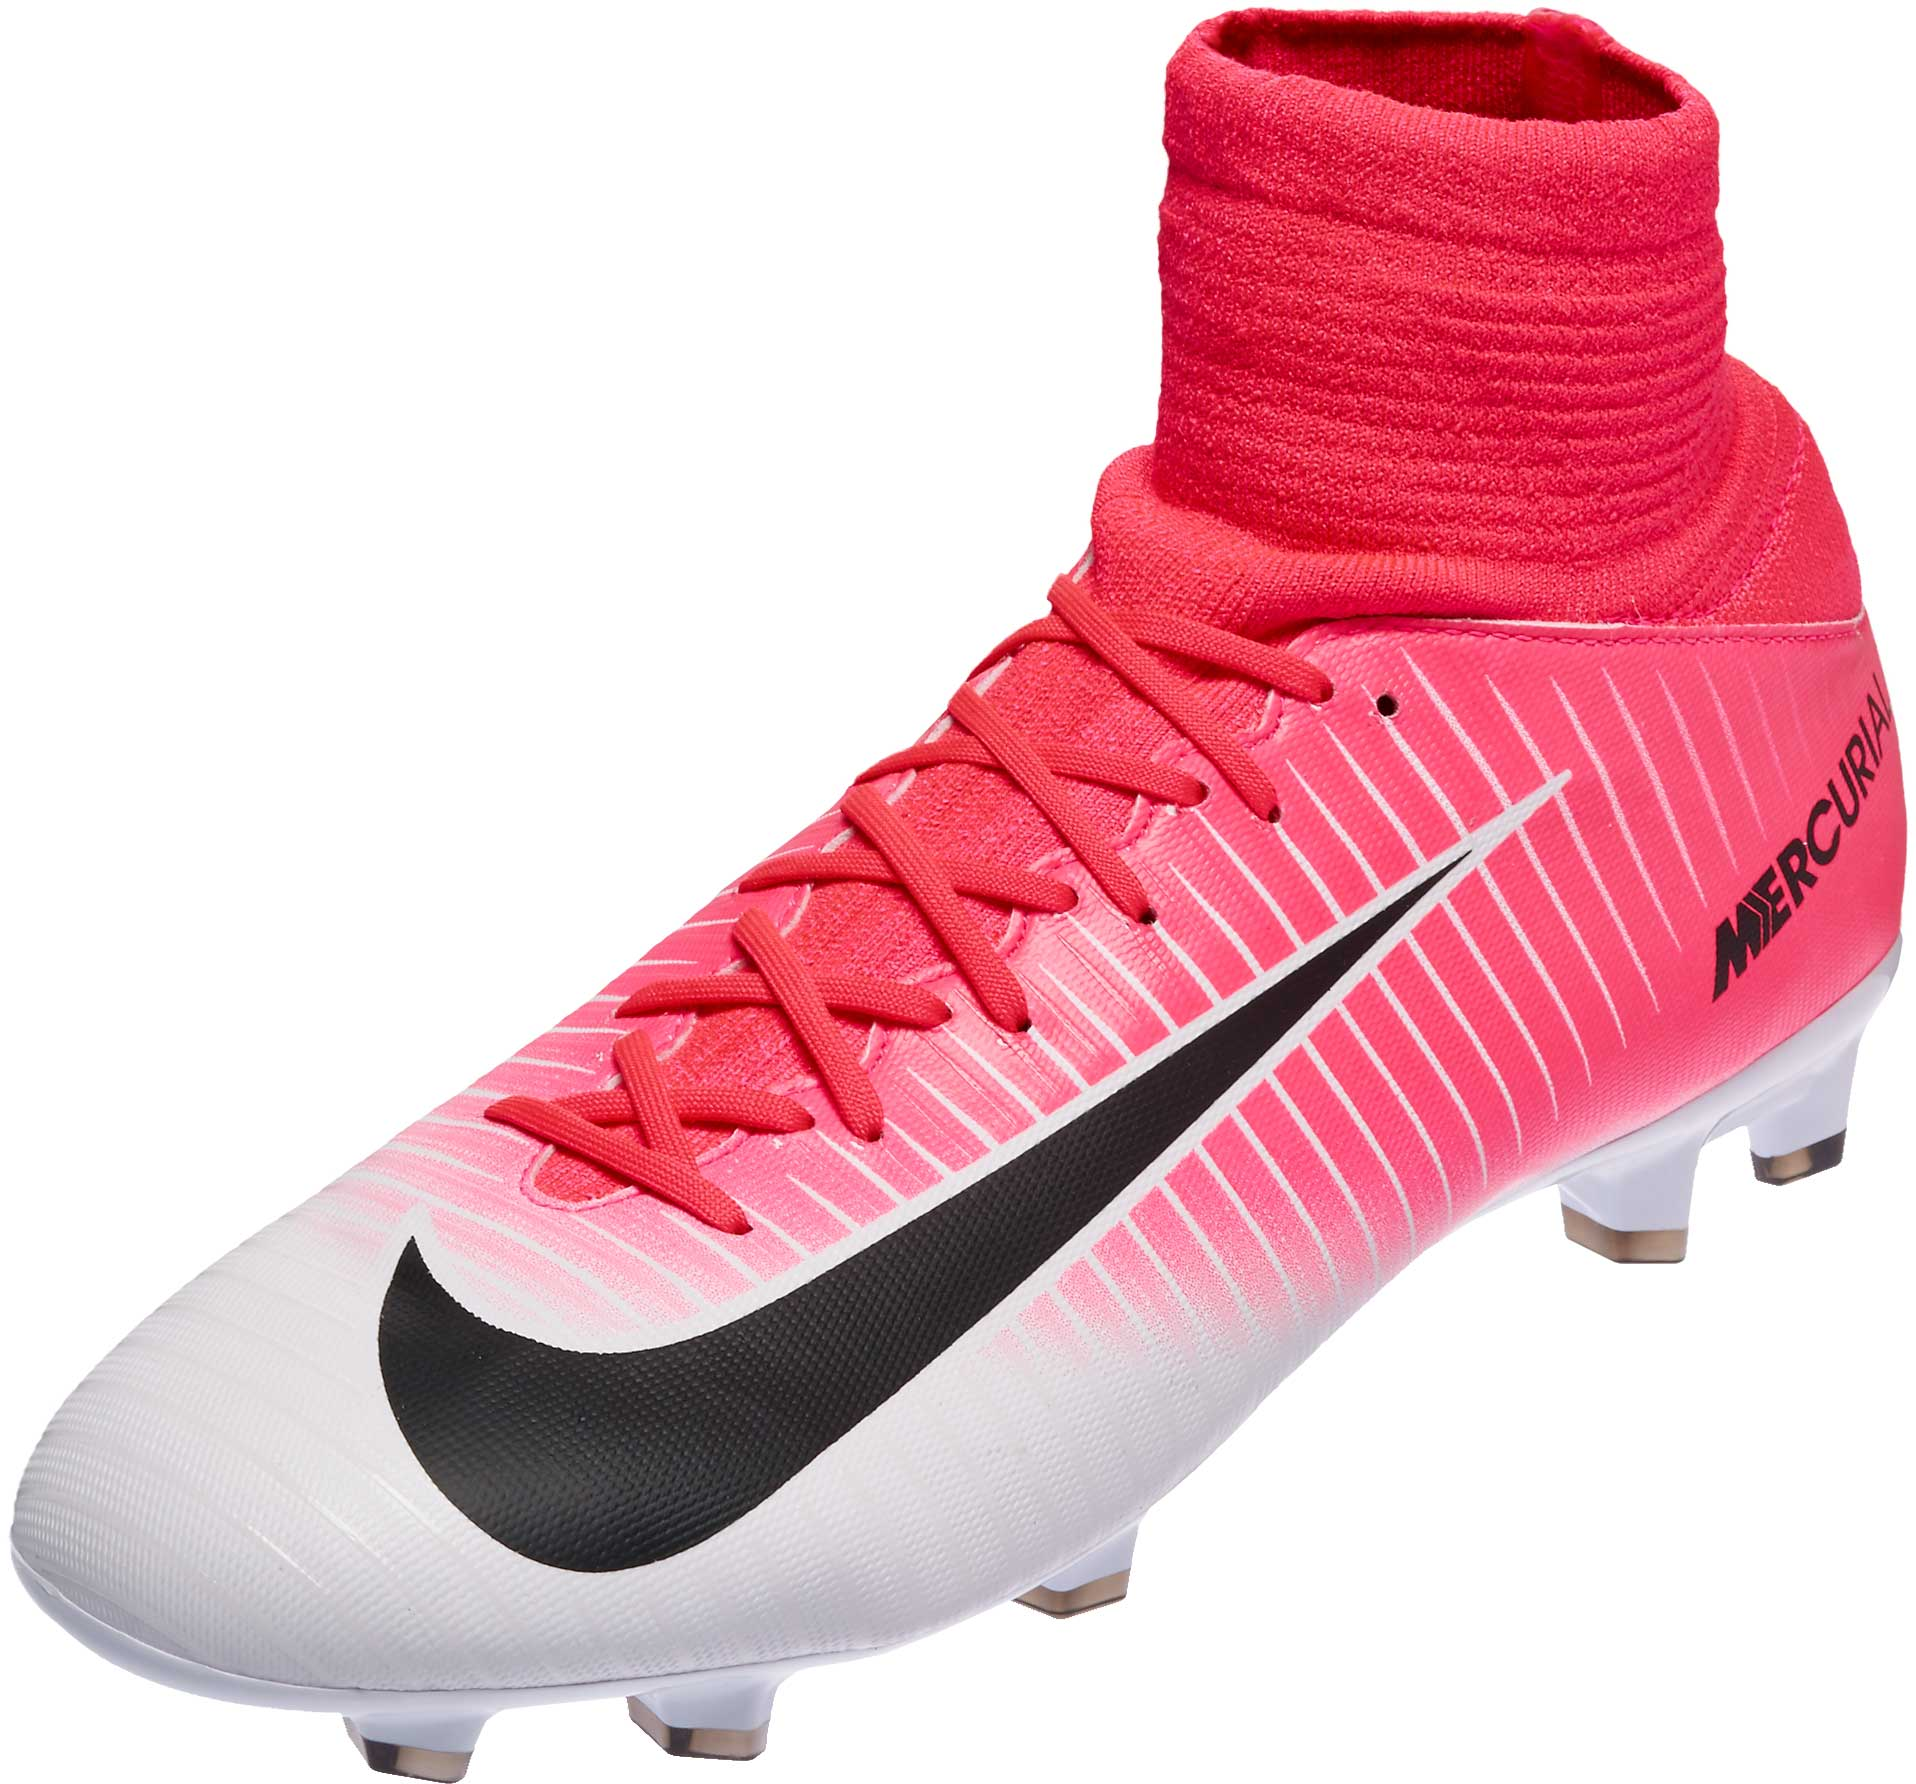 Nike Kids Mercurial Superfly V FG Nike Soccer Cleats